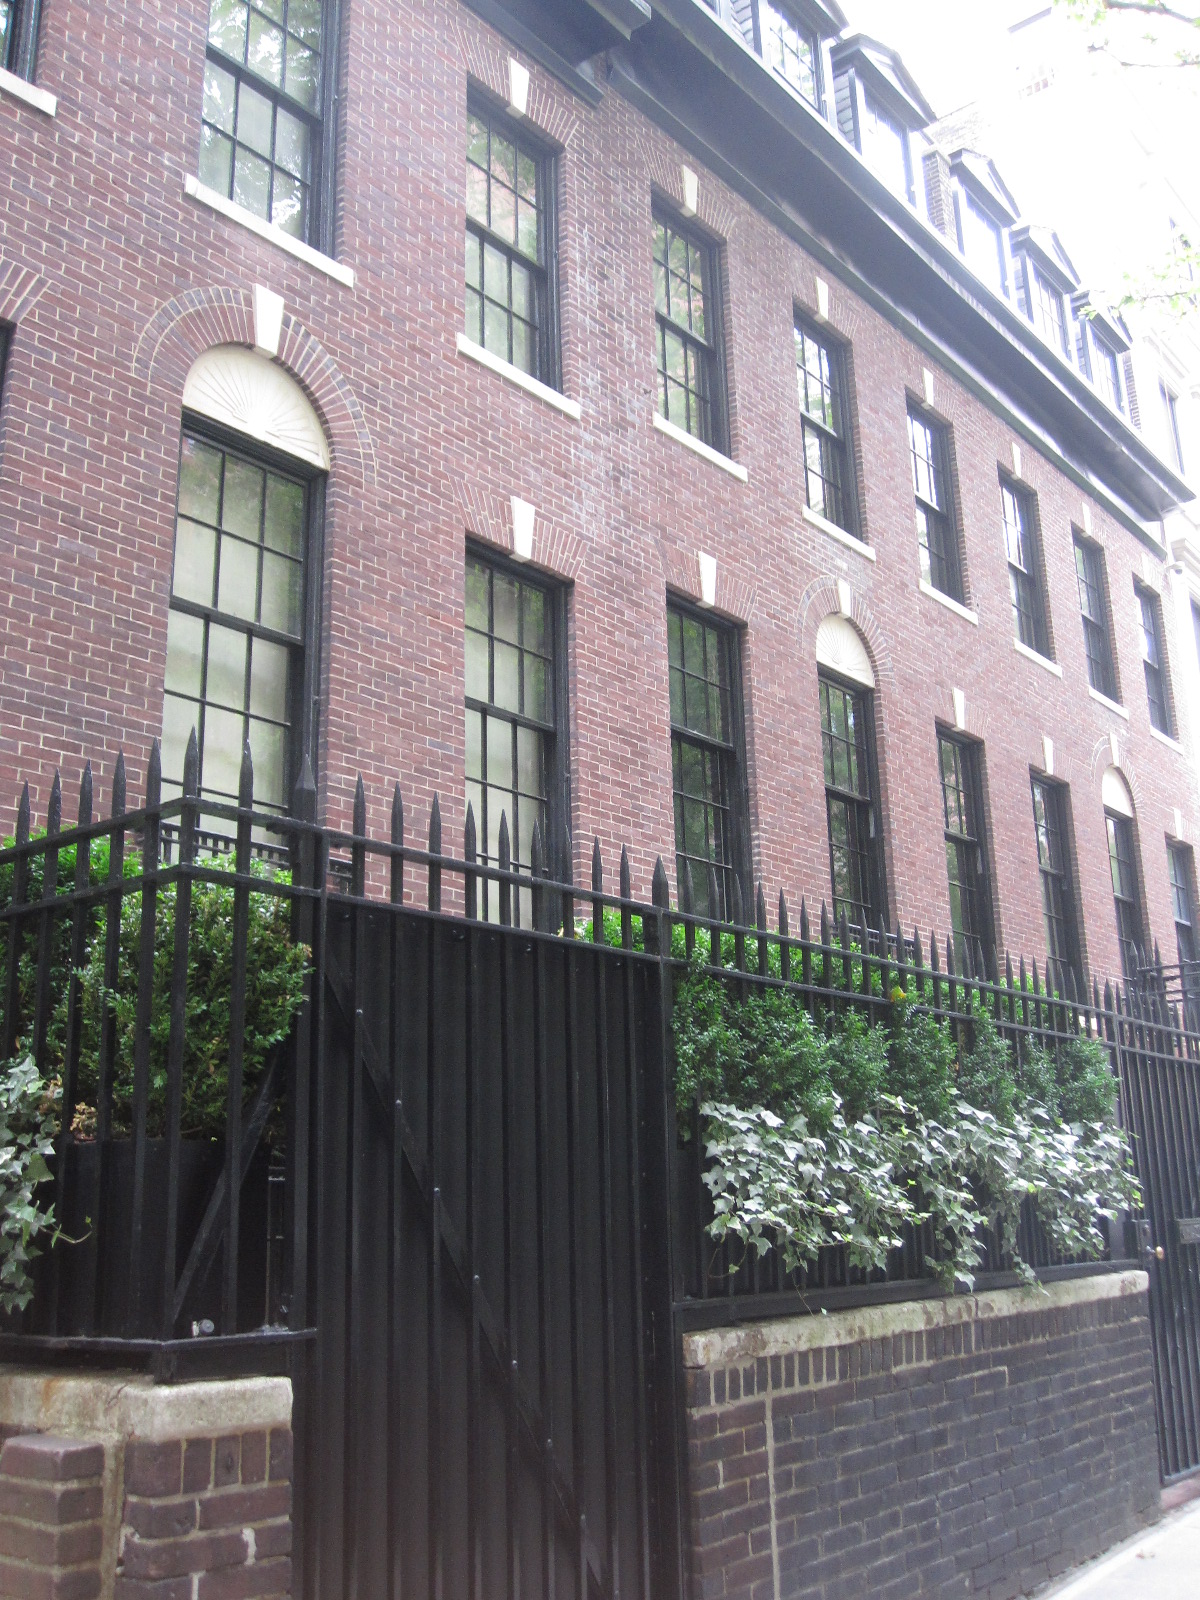 Madonna S House In New York 8217